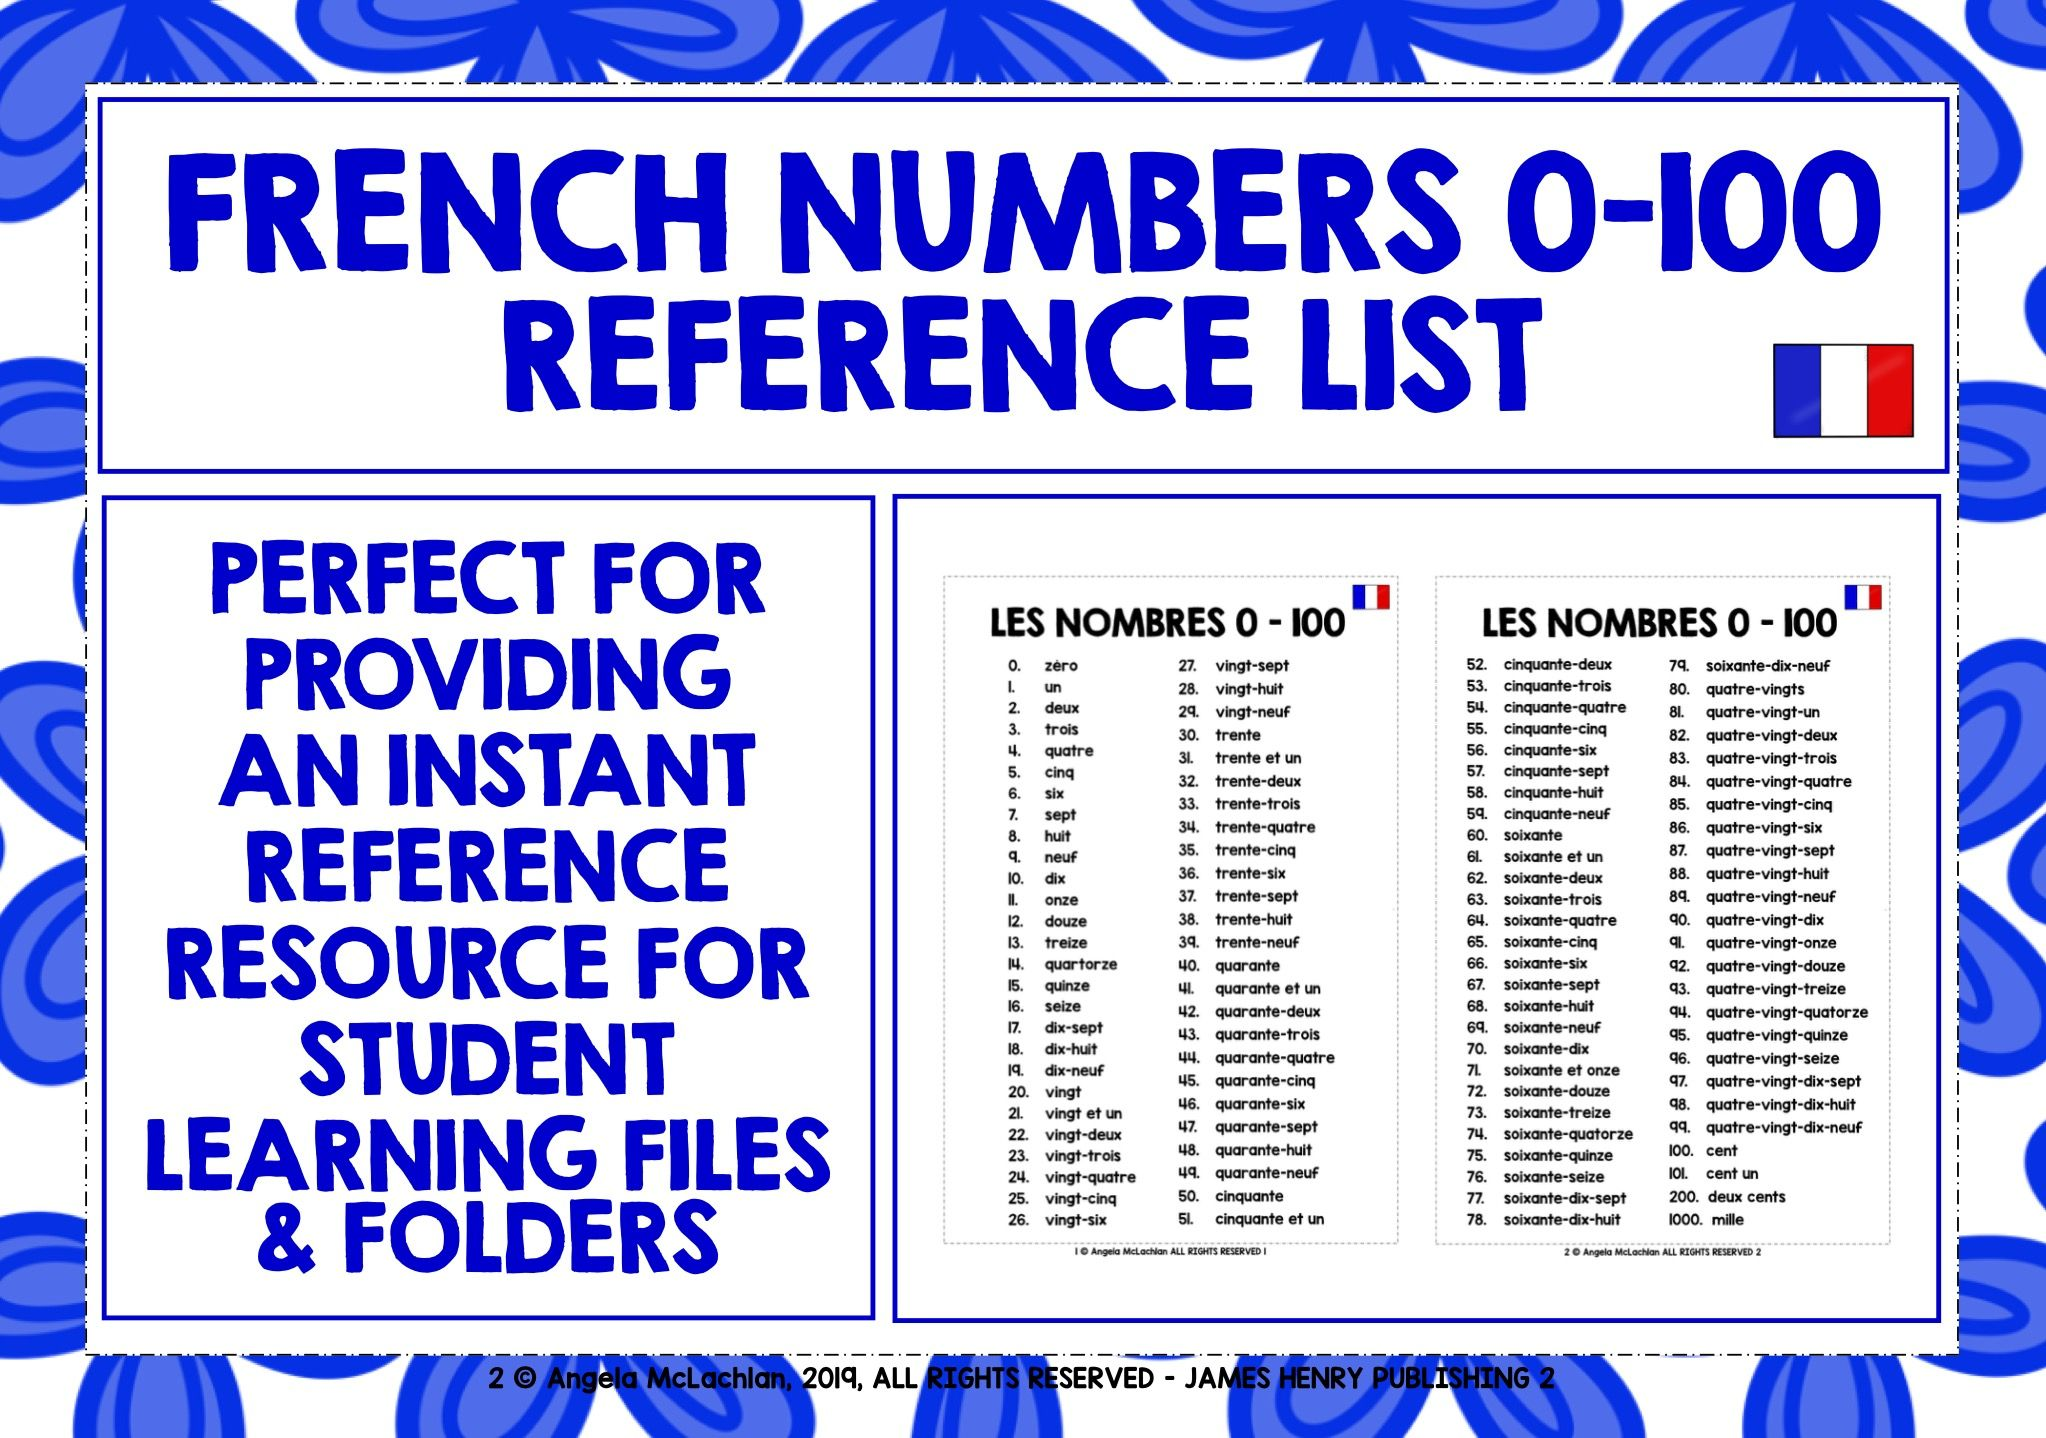 Frenchnumbers Frenchvocabulary Frenchreferencemat